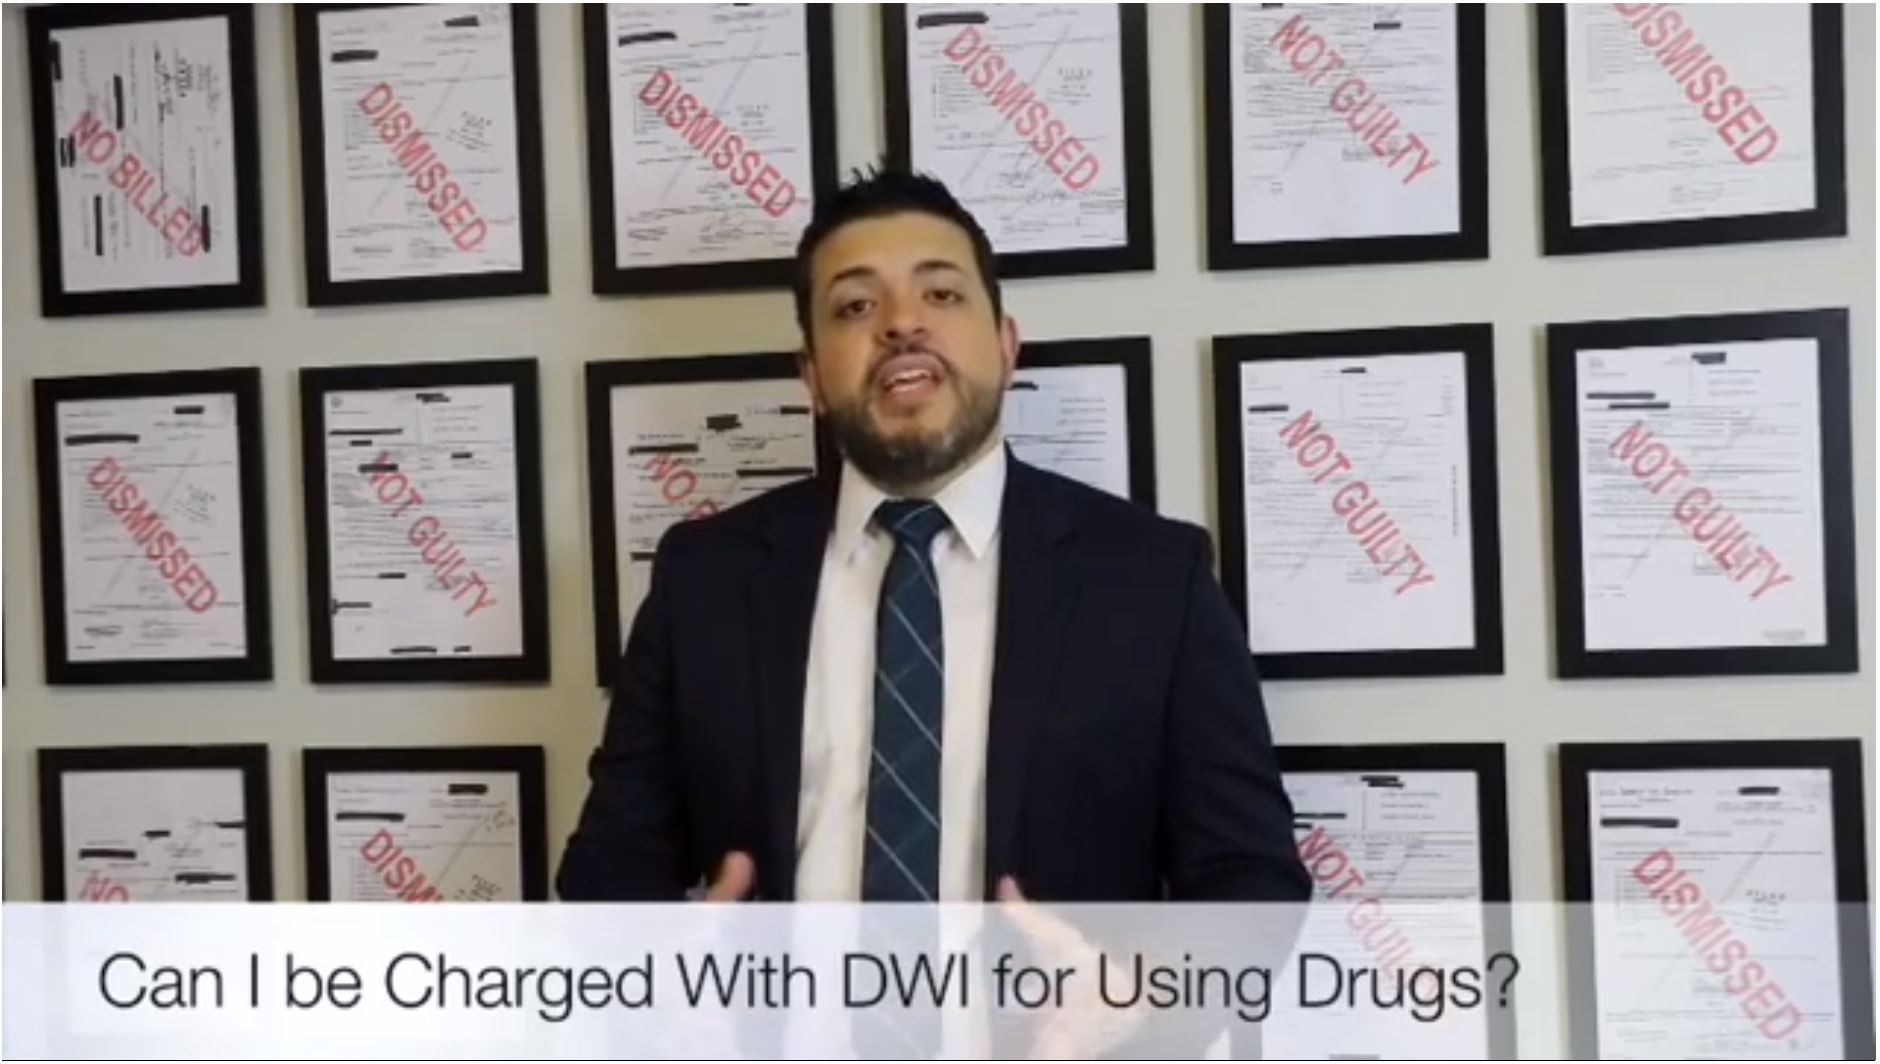 Can I be Charged with DWI for Driving after Using Drugs?